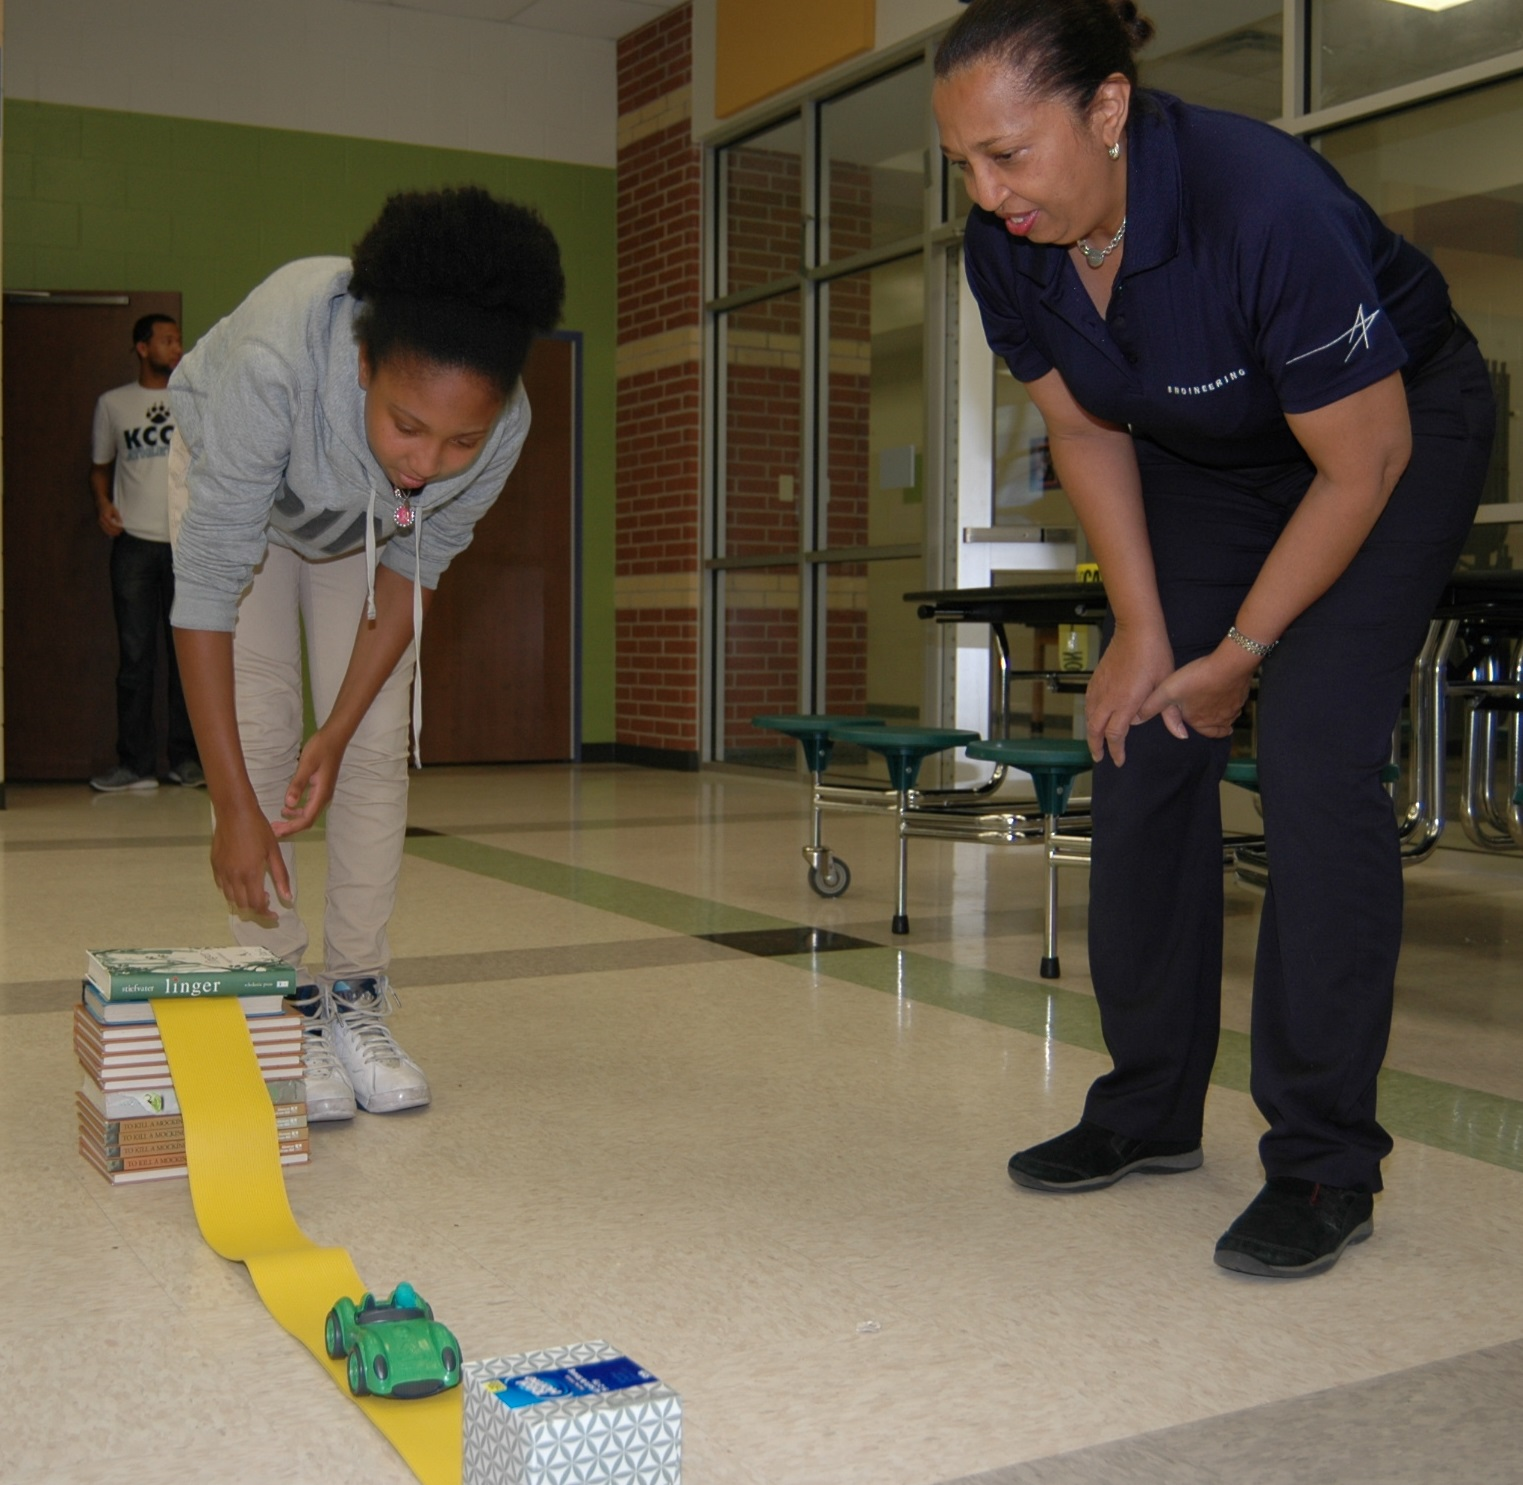 4-Hers participate in national science activity